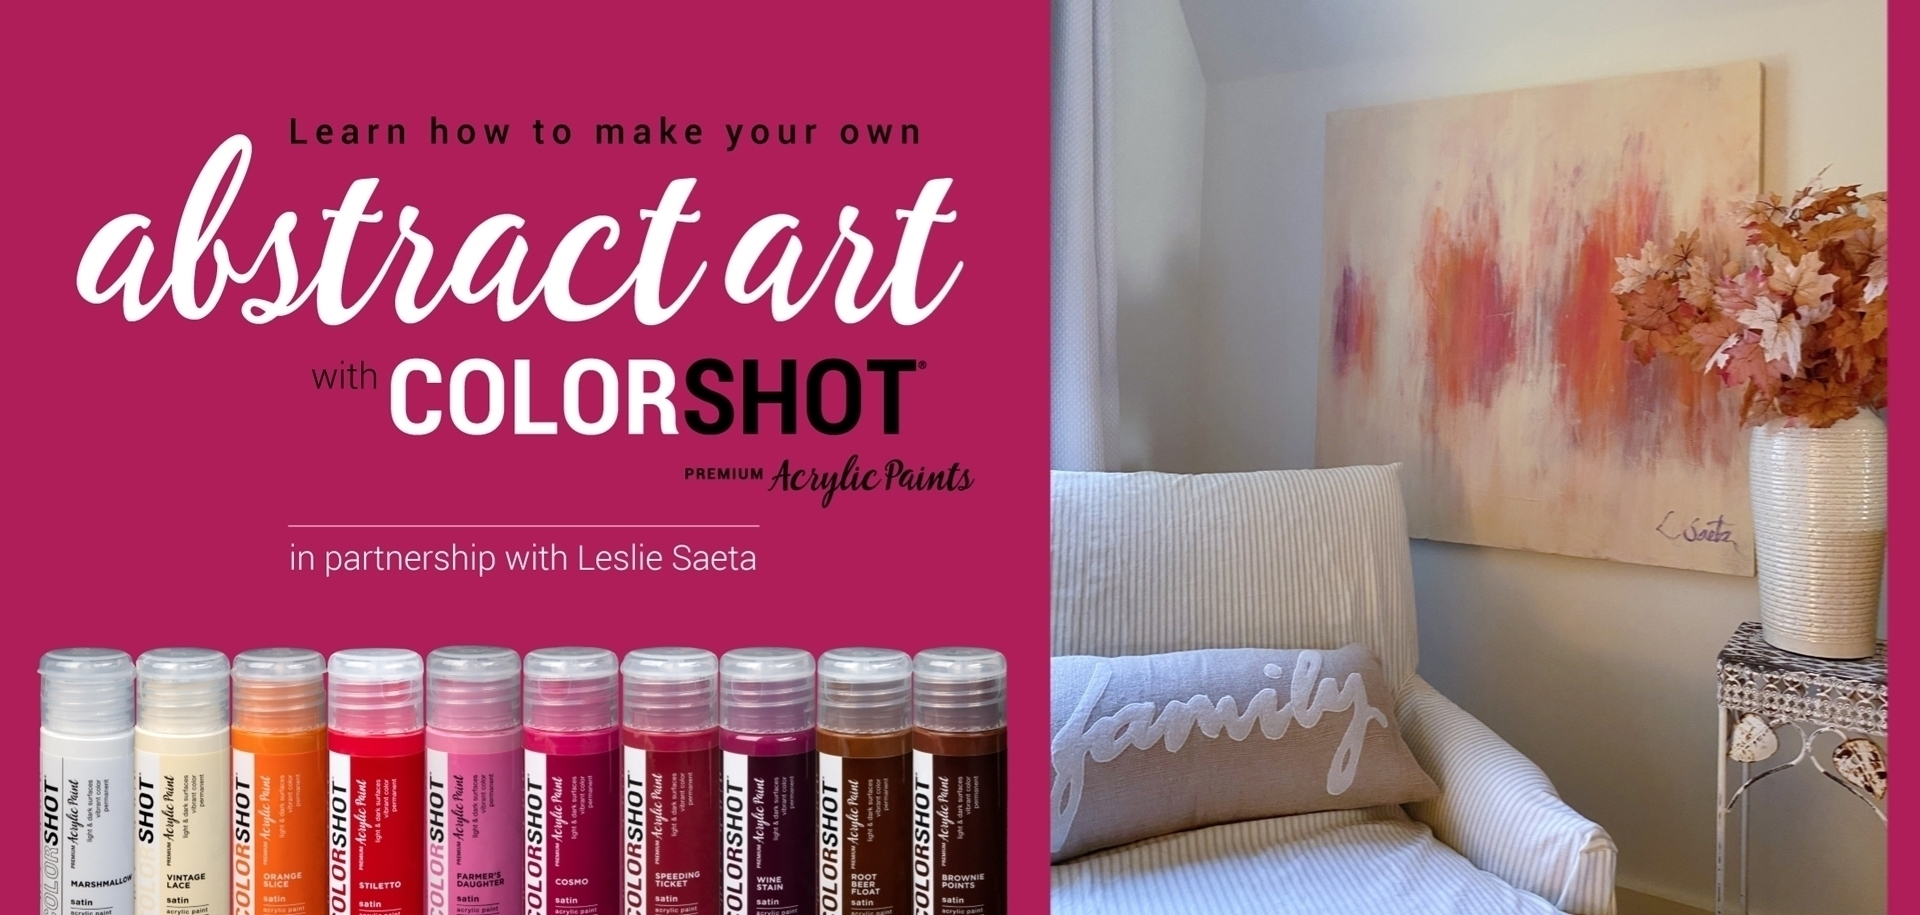 Abstract Acrylic Painting Tutorial